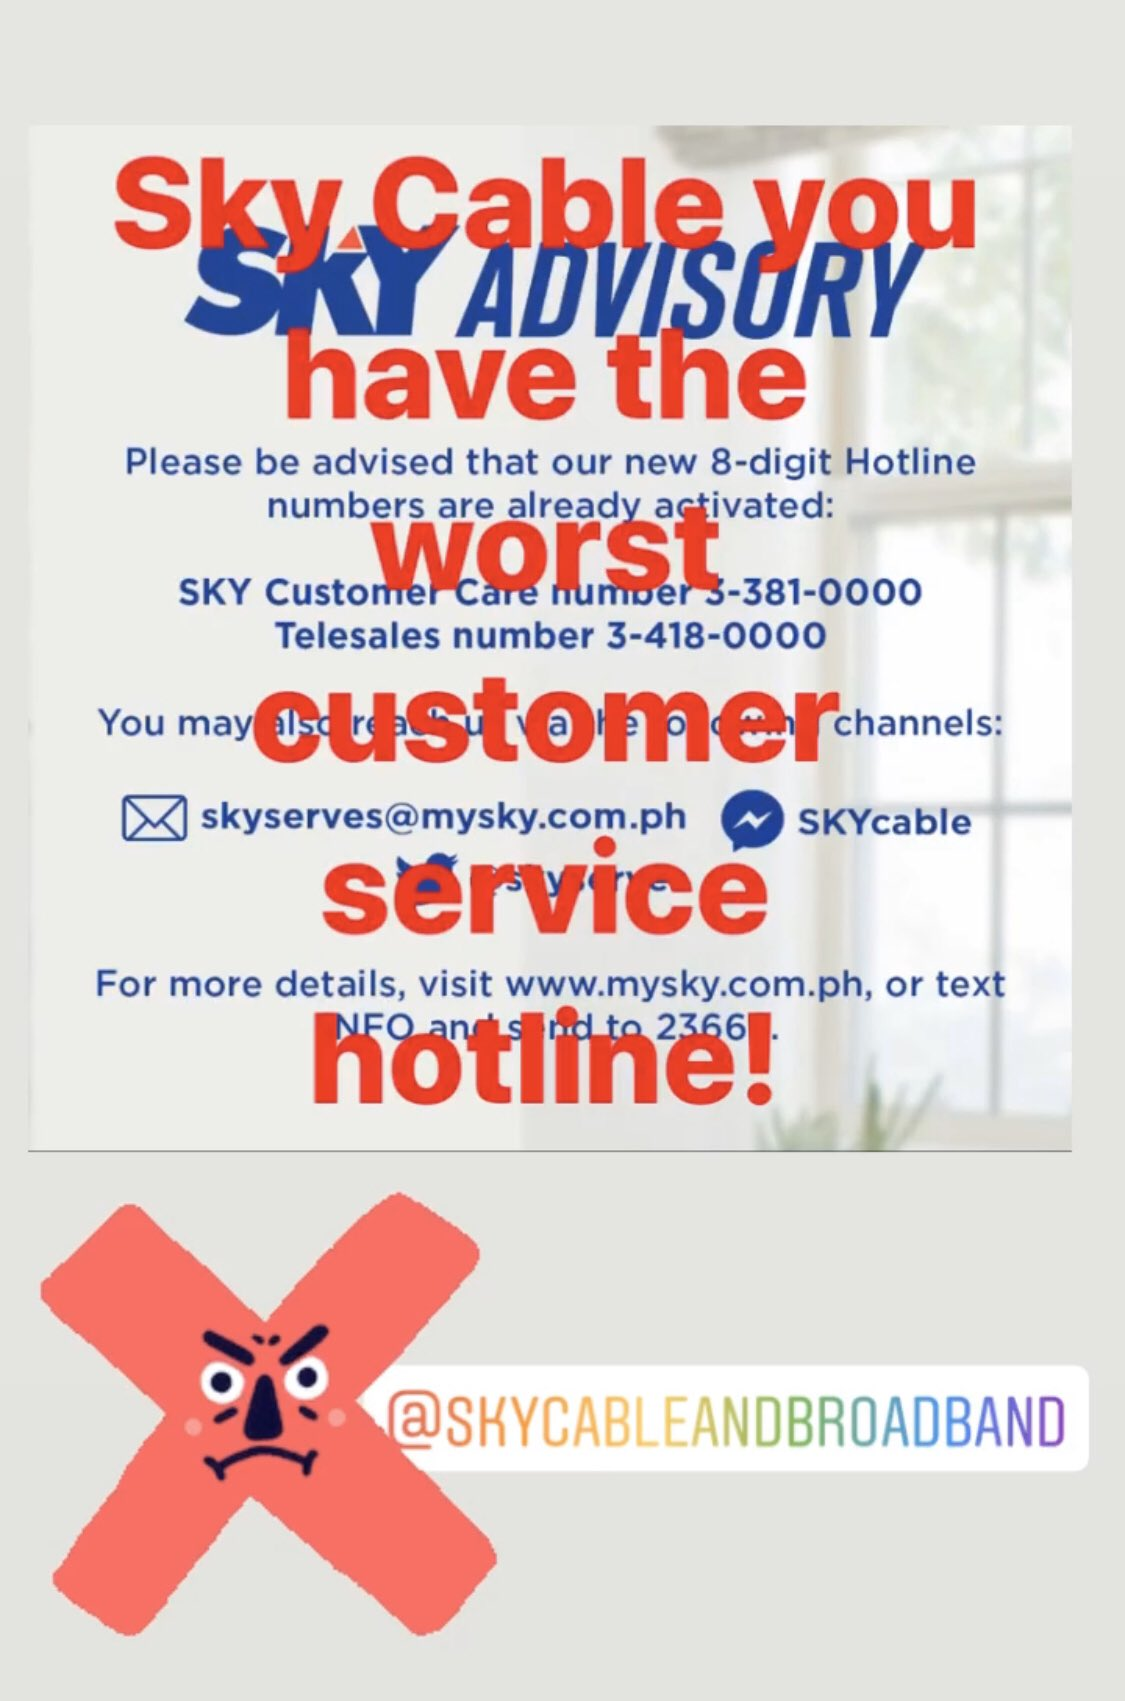 Jhen Almadro On Twitter Skyserves I Have Been Trying To Contact You Thru Your Published Customer Service Hotline All Day Already But I Can T Get Through The Lines Kainis Skycable Kowcho Https T Co Tqyzj4ahci